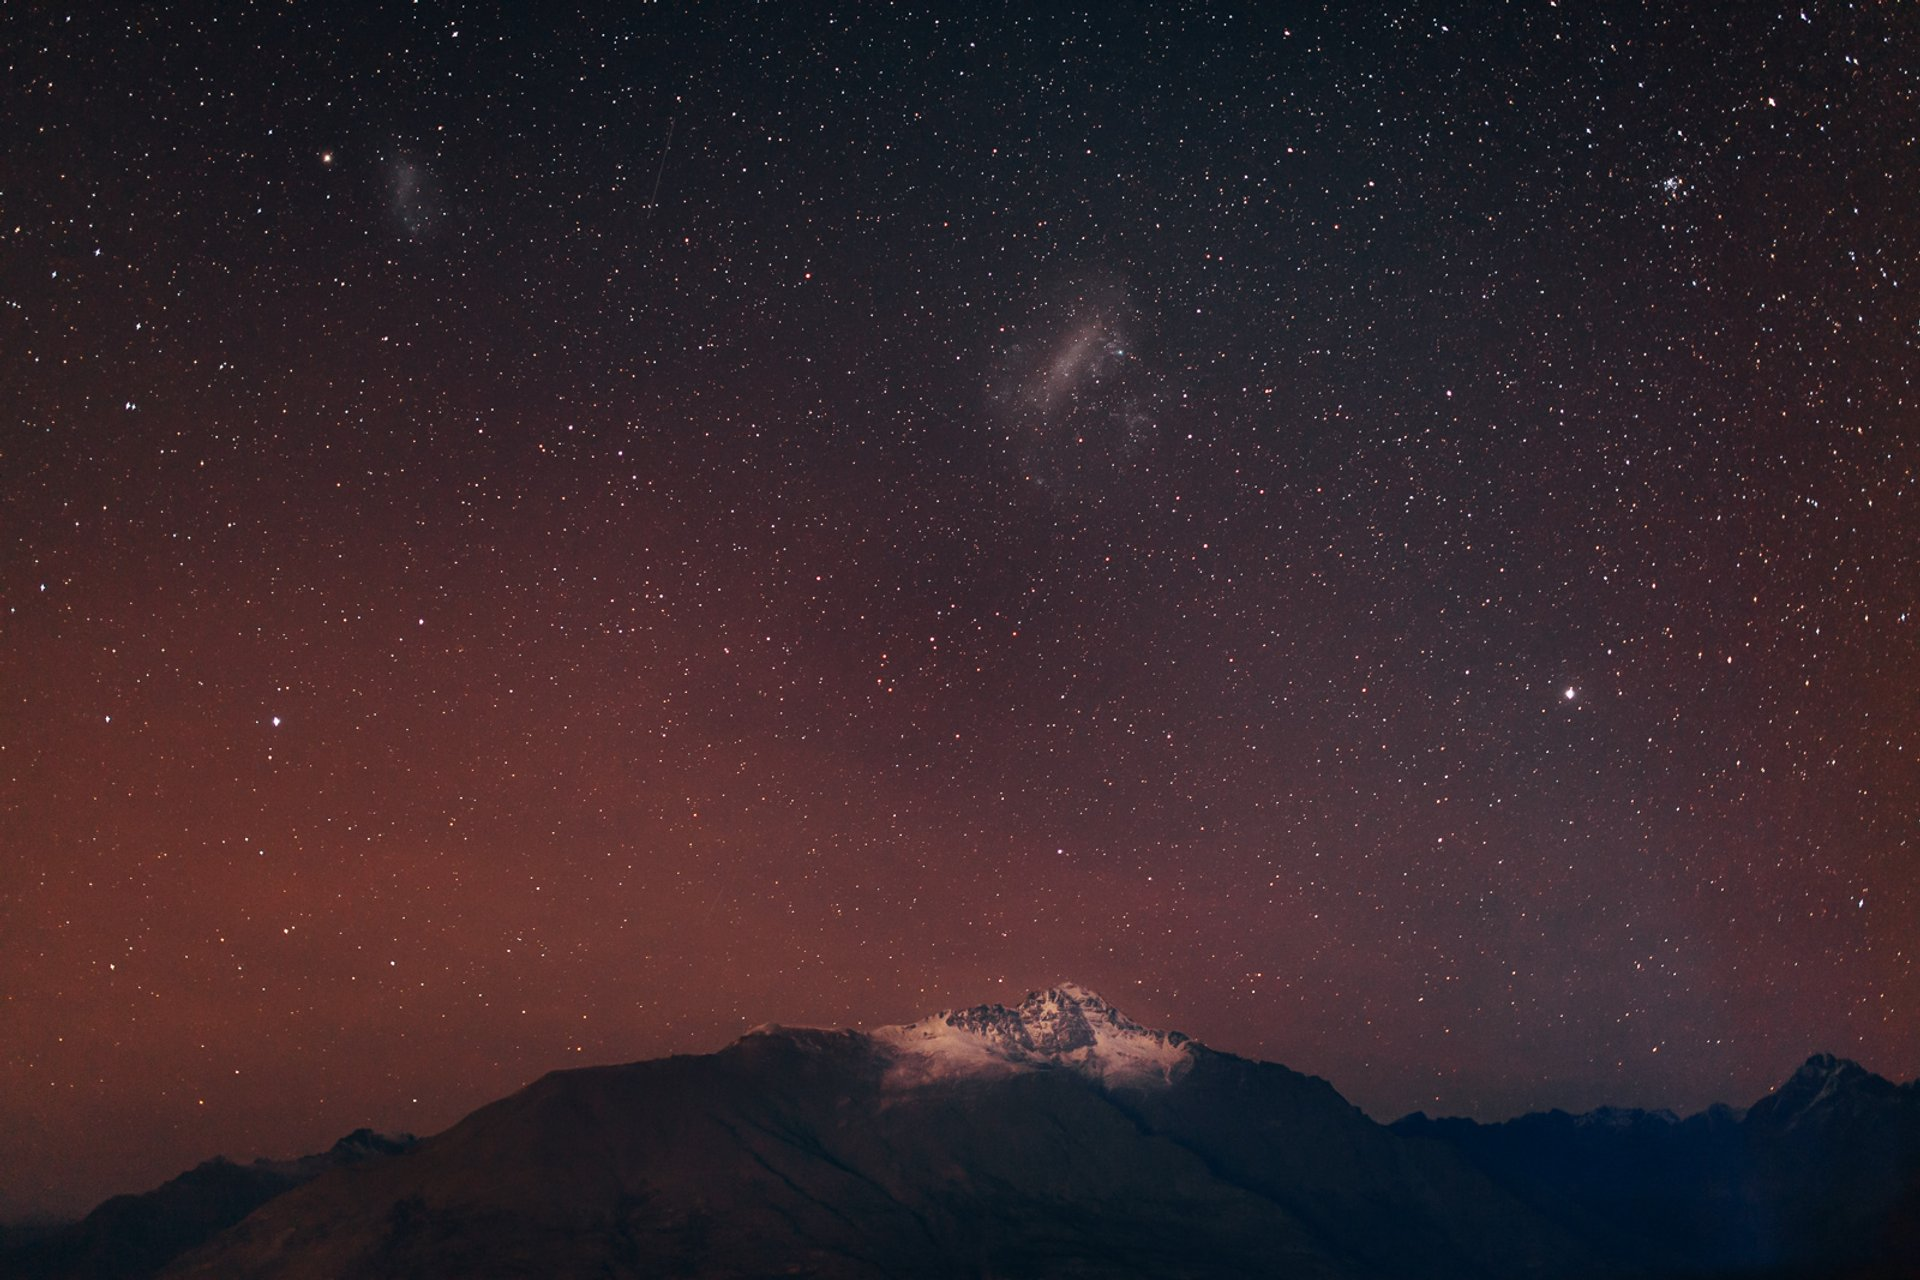 Stars under night sky. Queenstown, Otago, New Zealand 2019